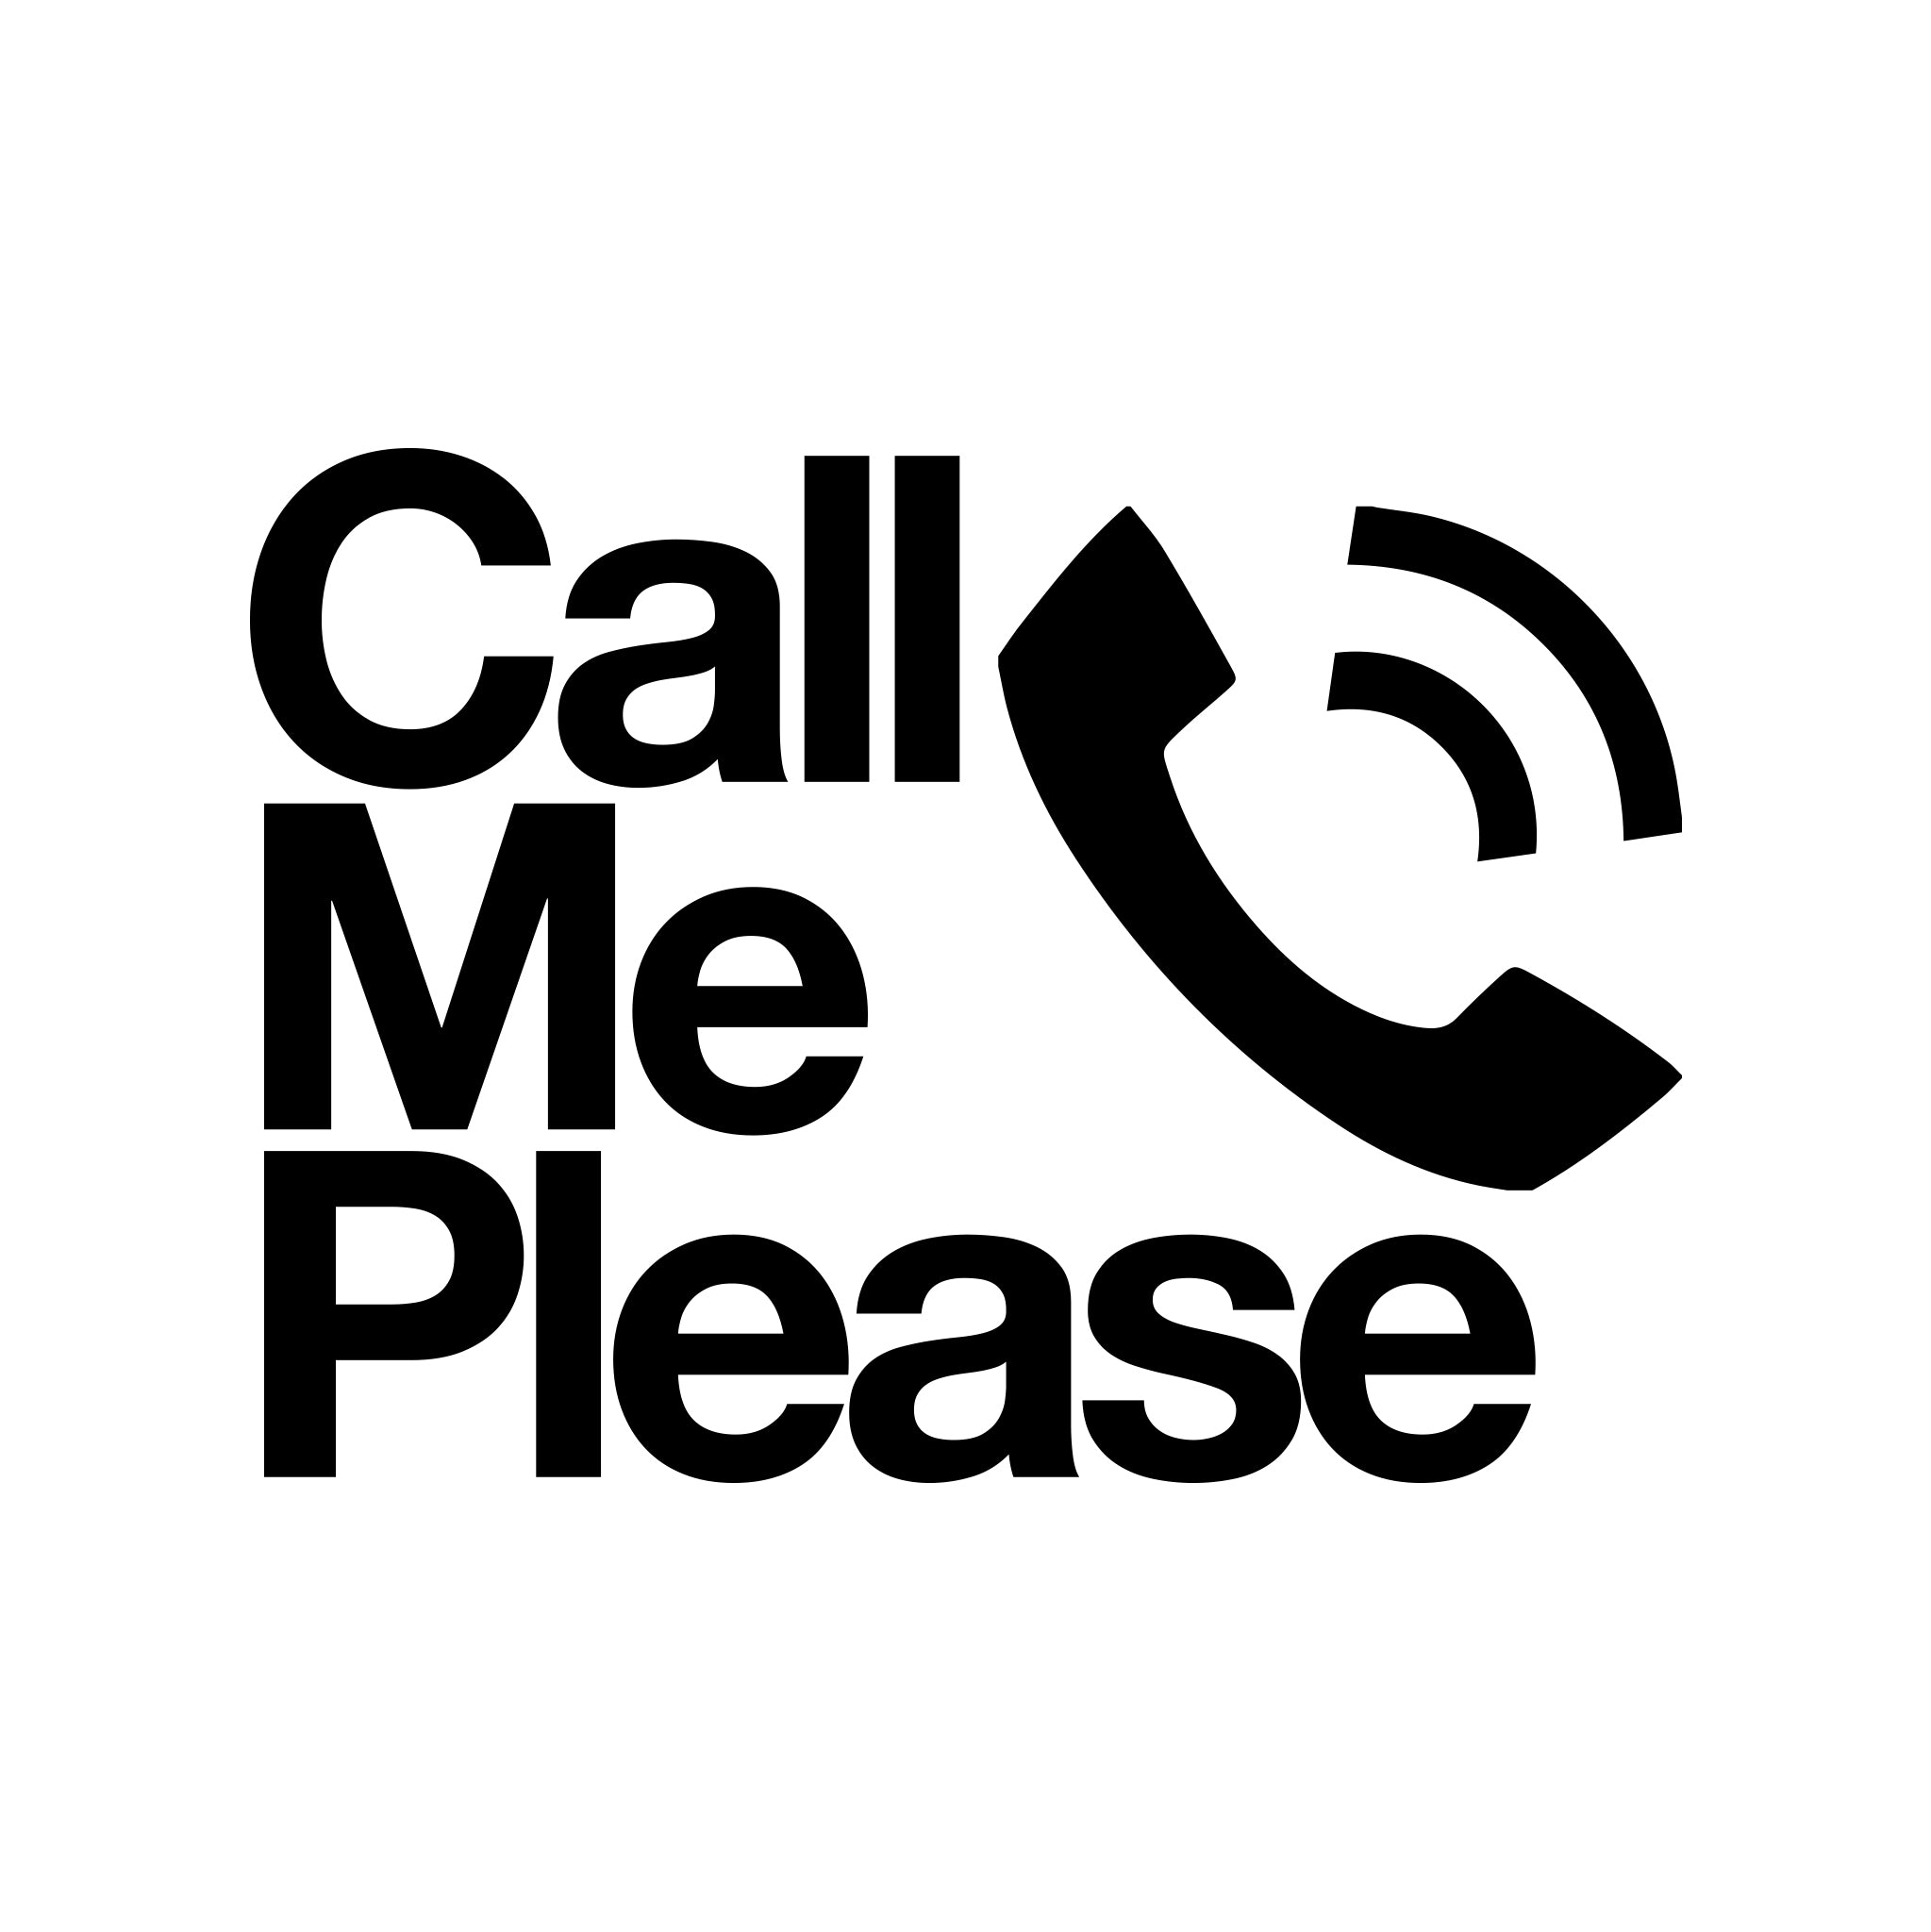 Call me please